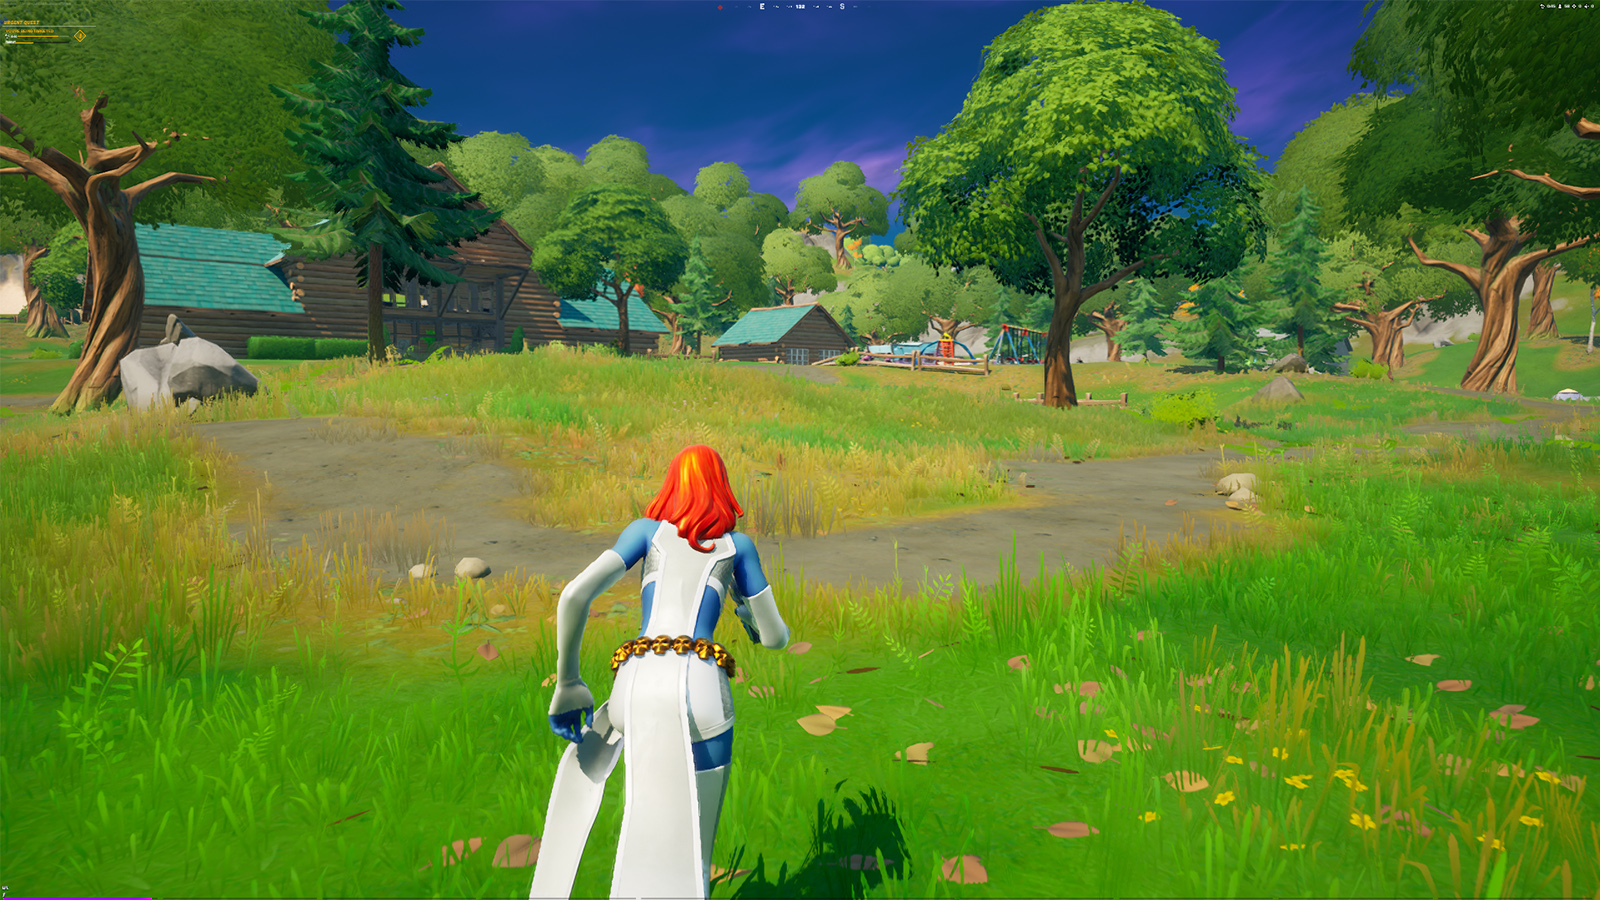 Fortnite's Weeping Woods has seen a change, too